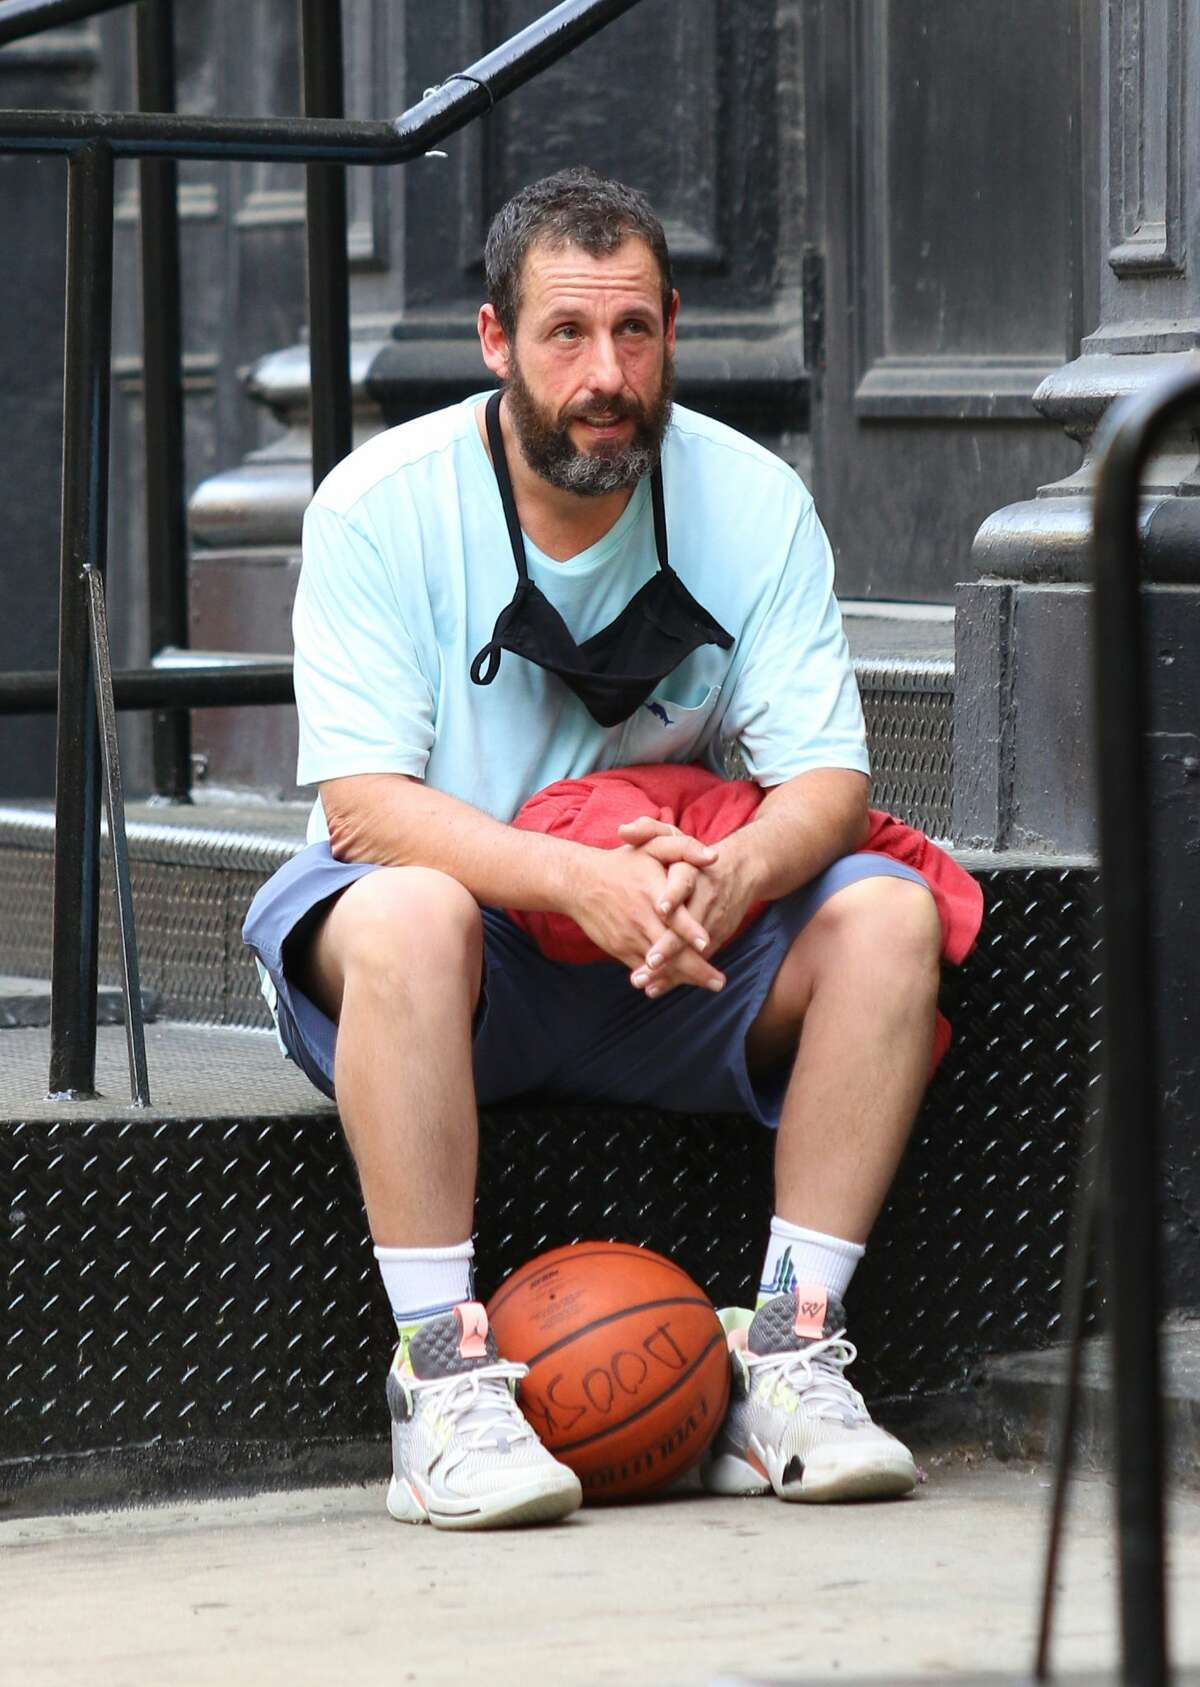 MANHATTAN, NY - MAY 2: Adan Sandler is seen on May 2, 2021 in Manhattan, New York. (Photo by LRNYC/MEGA/GC Images)